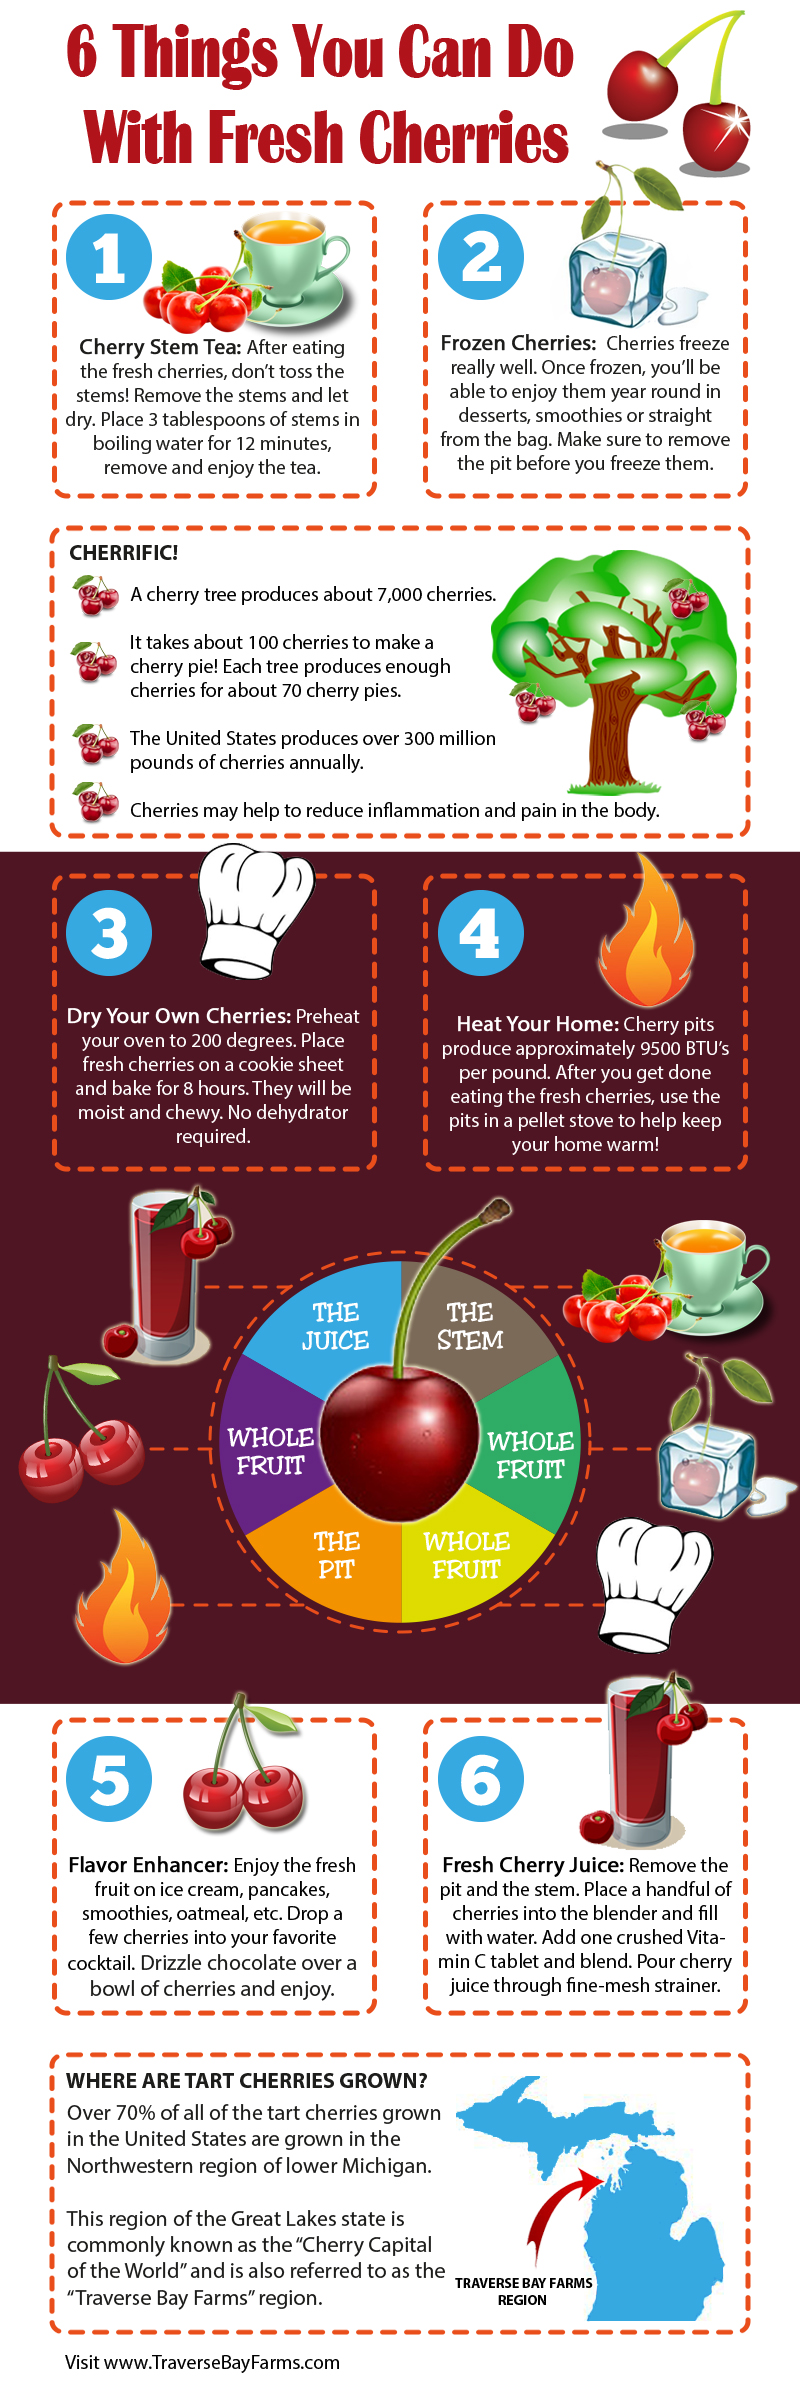 6 Things You Can Do With Fresh Cherries